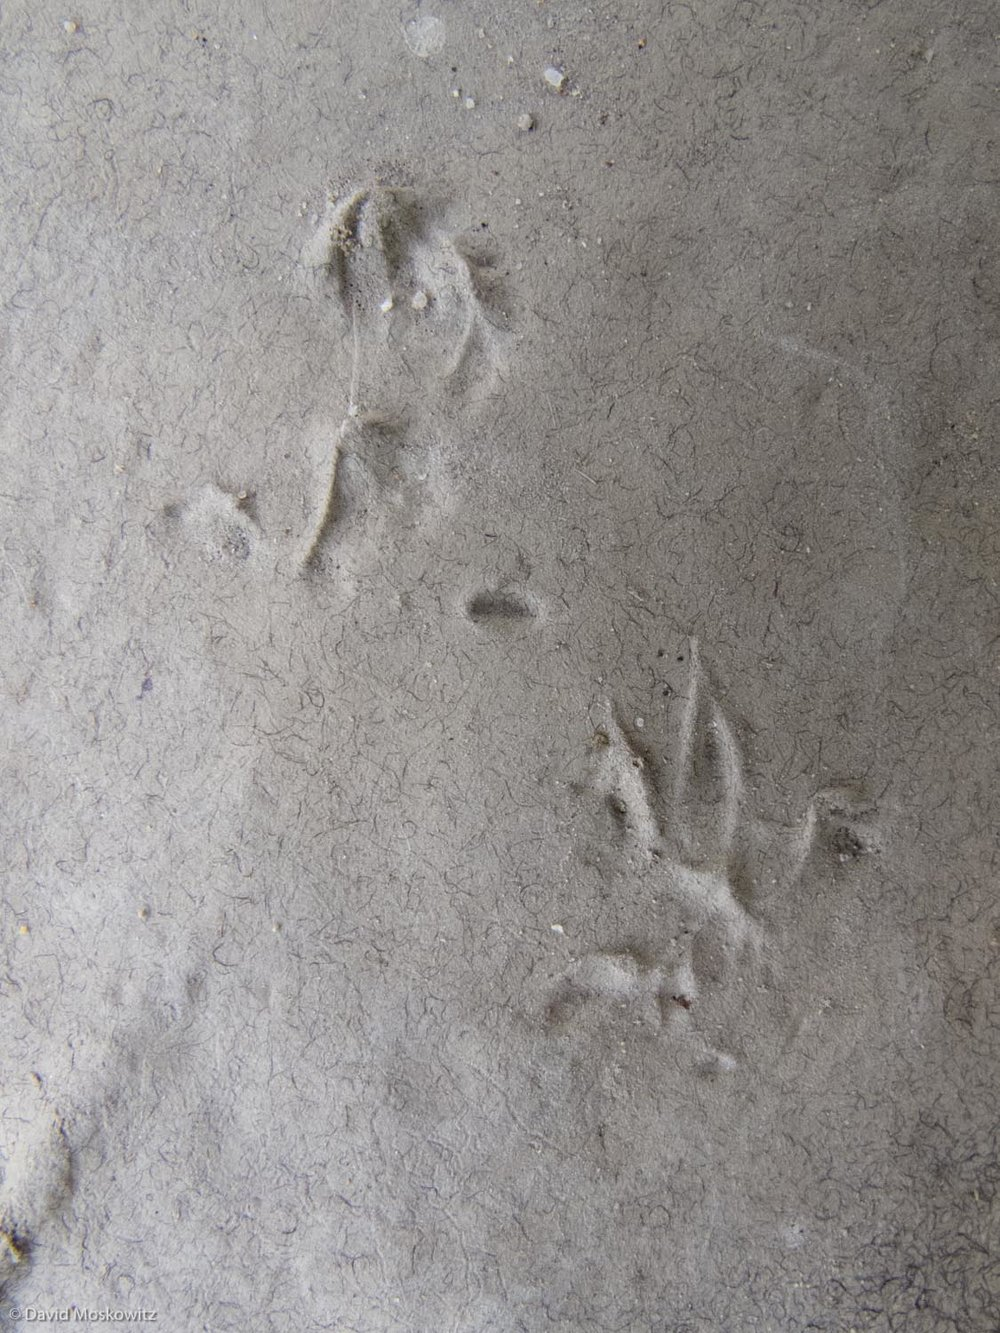 Front (below) and hind (above) tracks of a wood mouse (Apodemus species). Saxony, Germany.